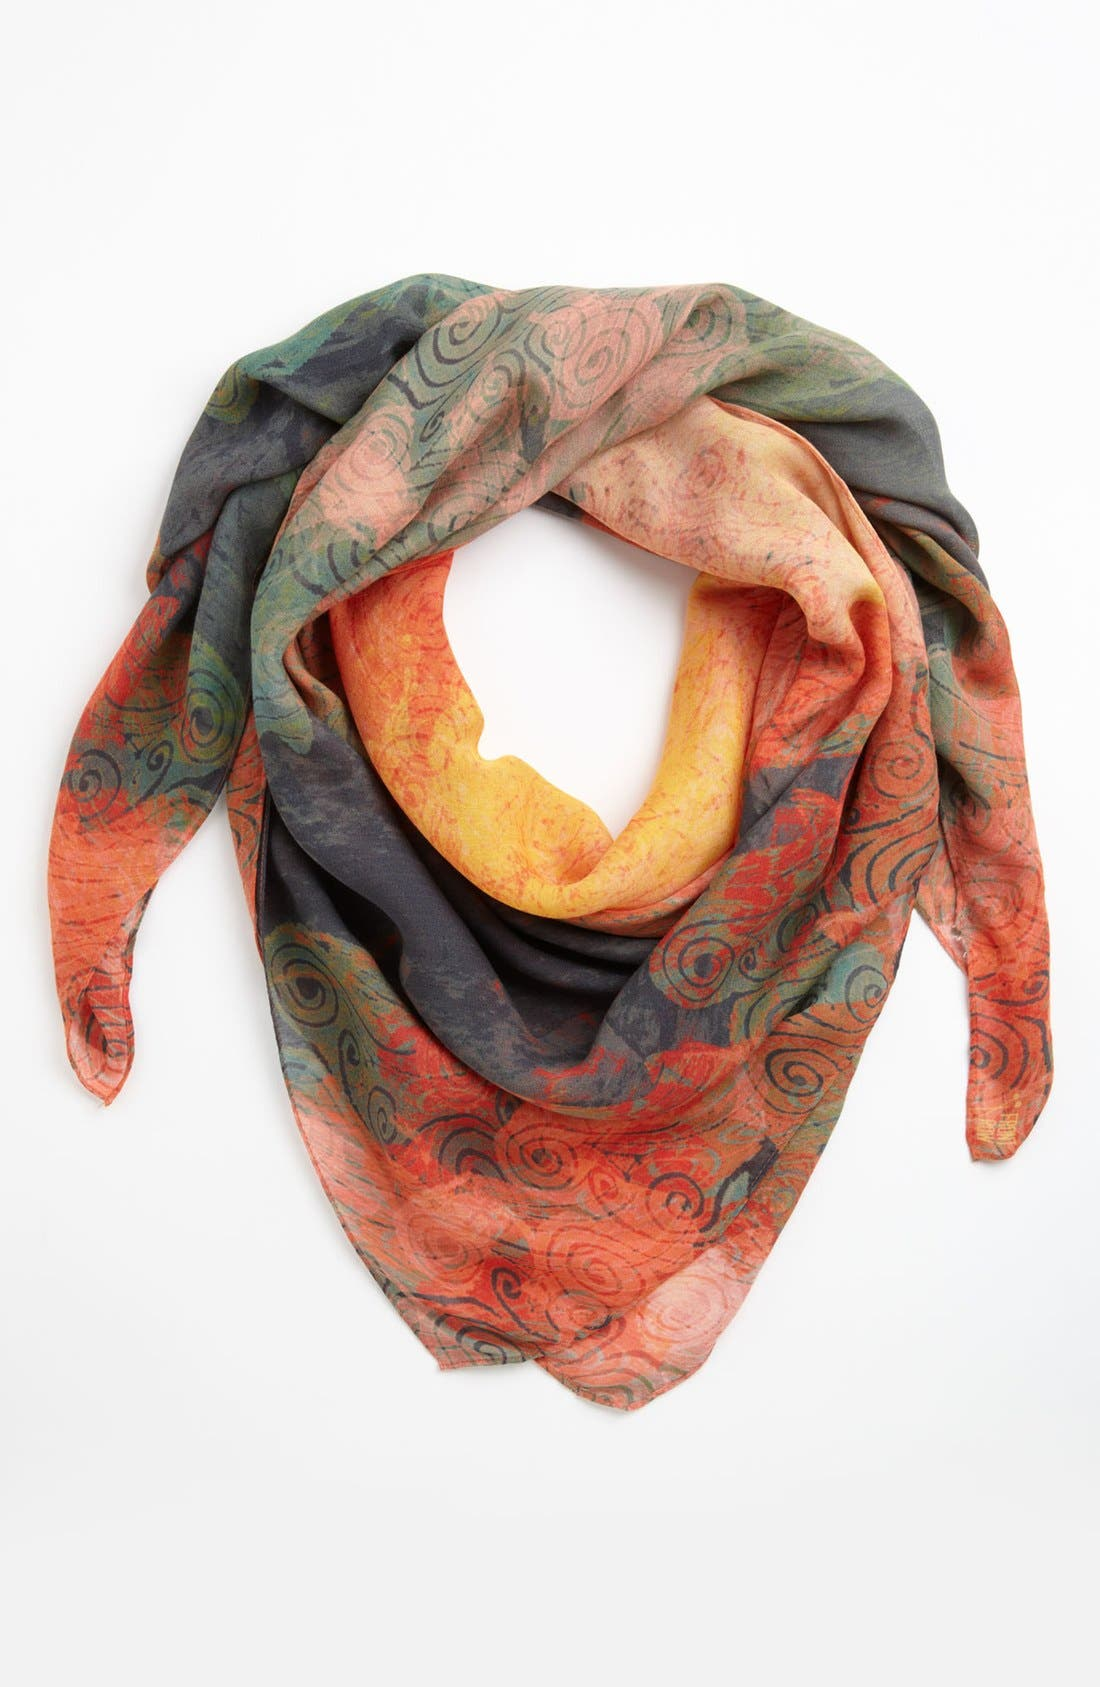 Alternate Image 1 Selected - Front Row Society 'Heat Square' Scarf